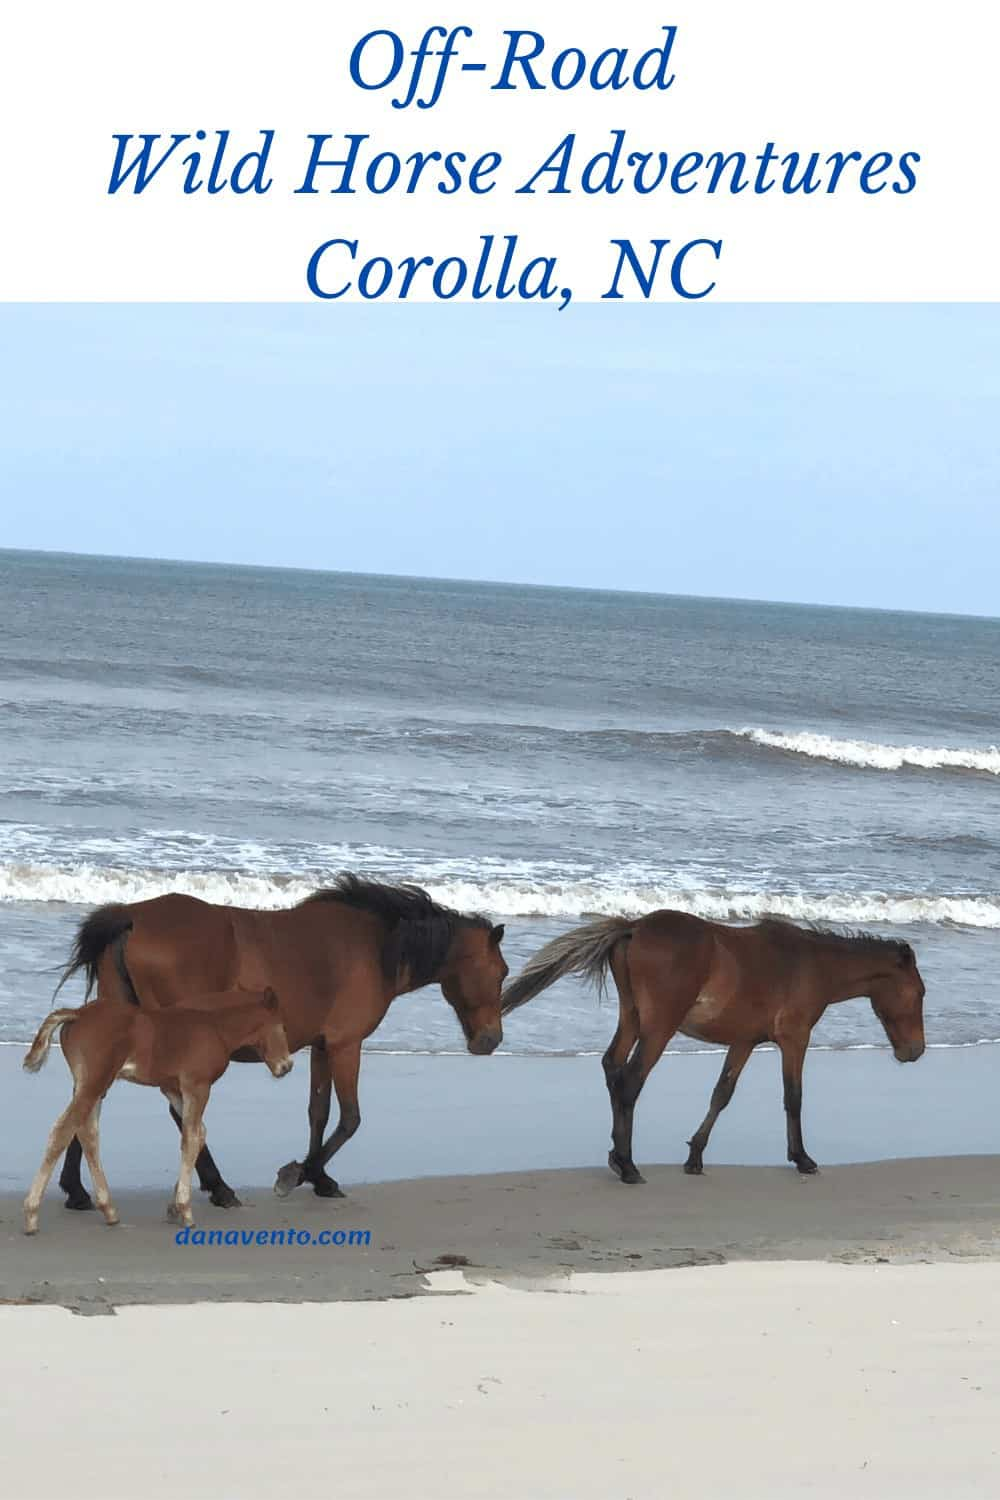 Wild Spanish Colonial Mustangs with Foal on Carova Beach, NC